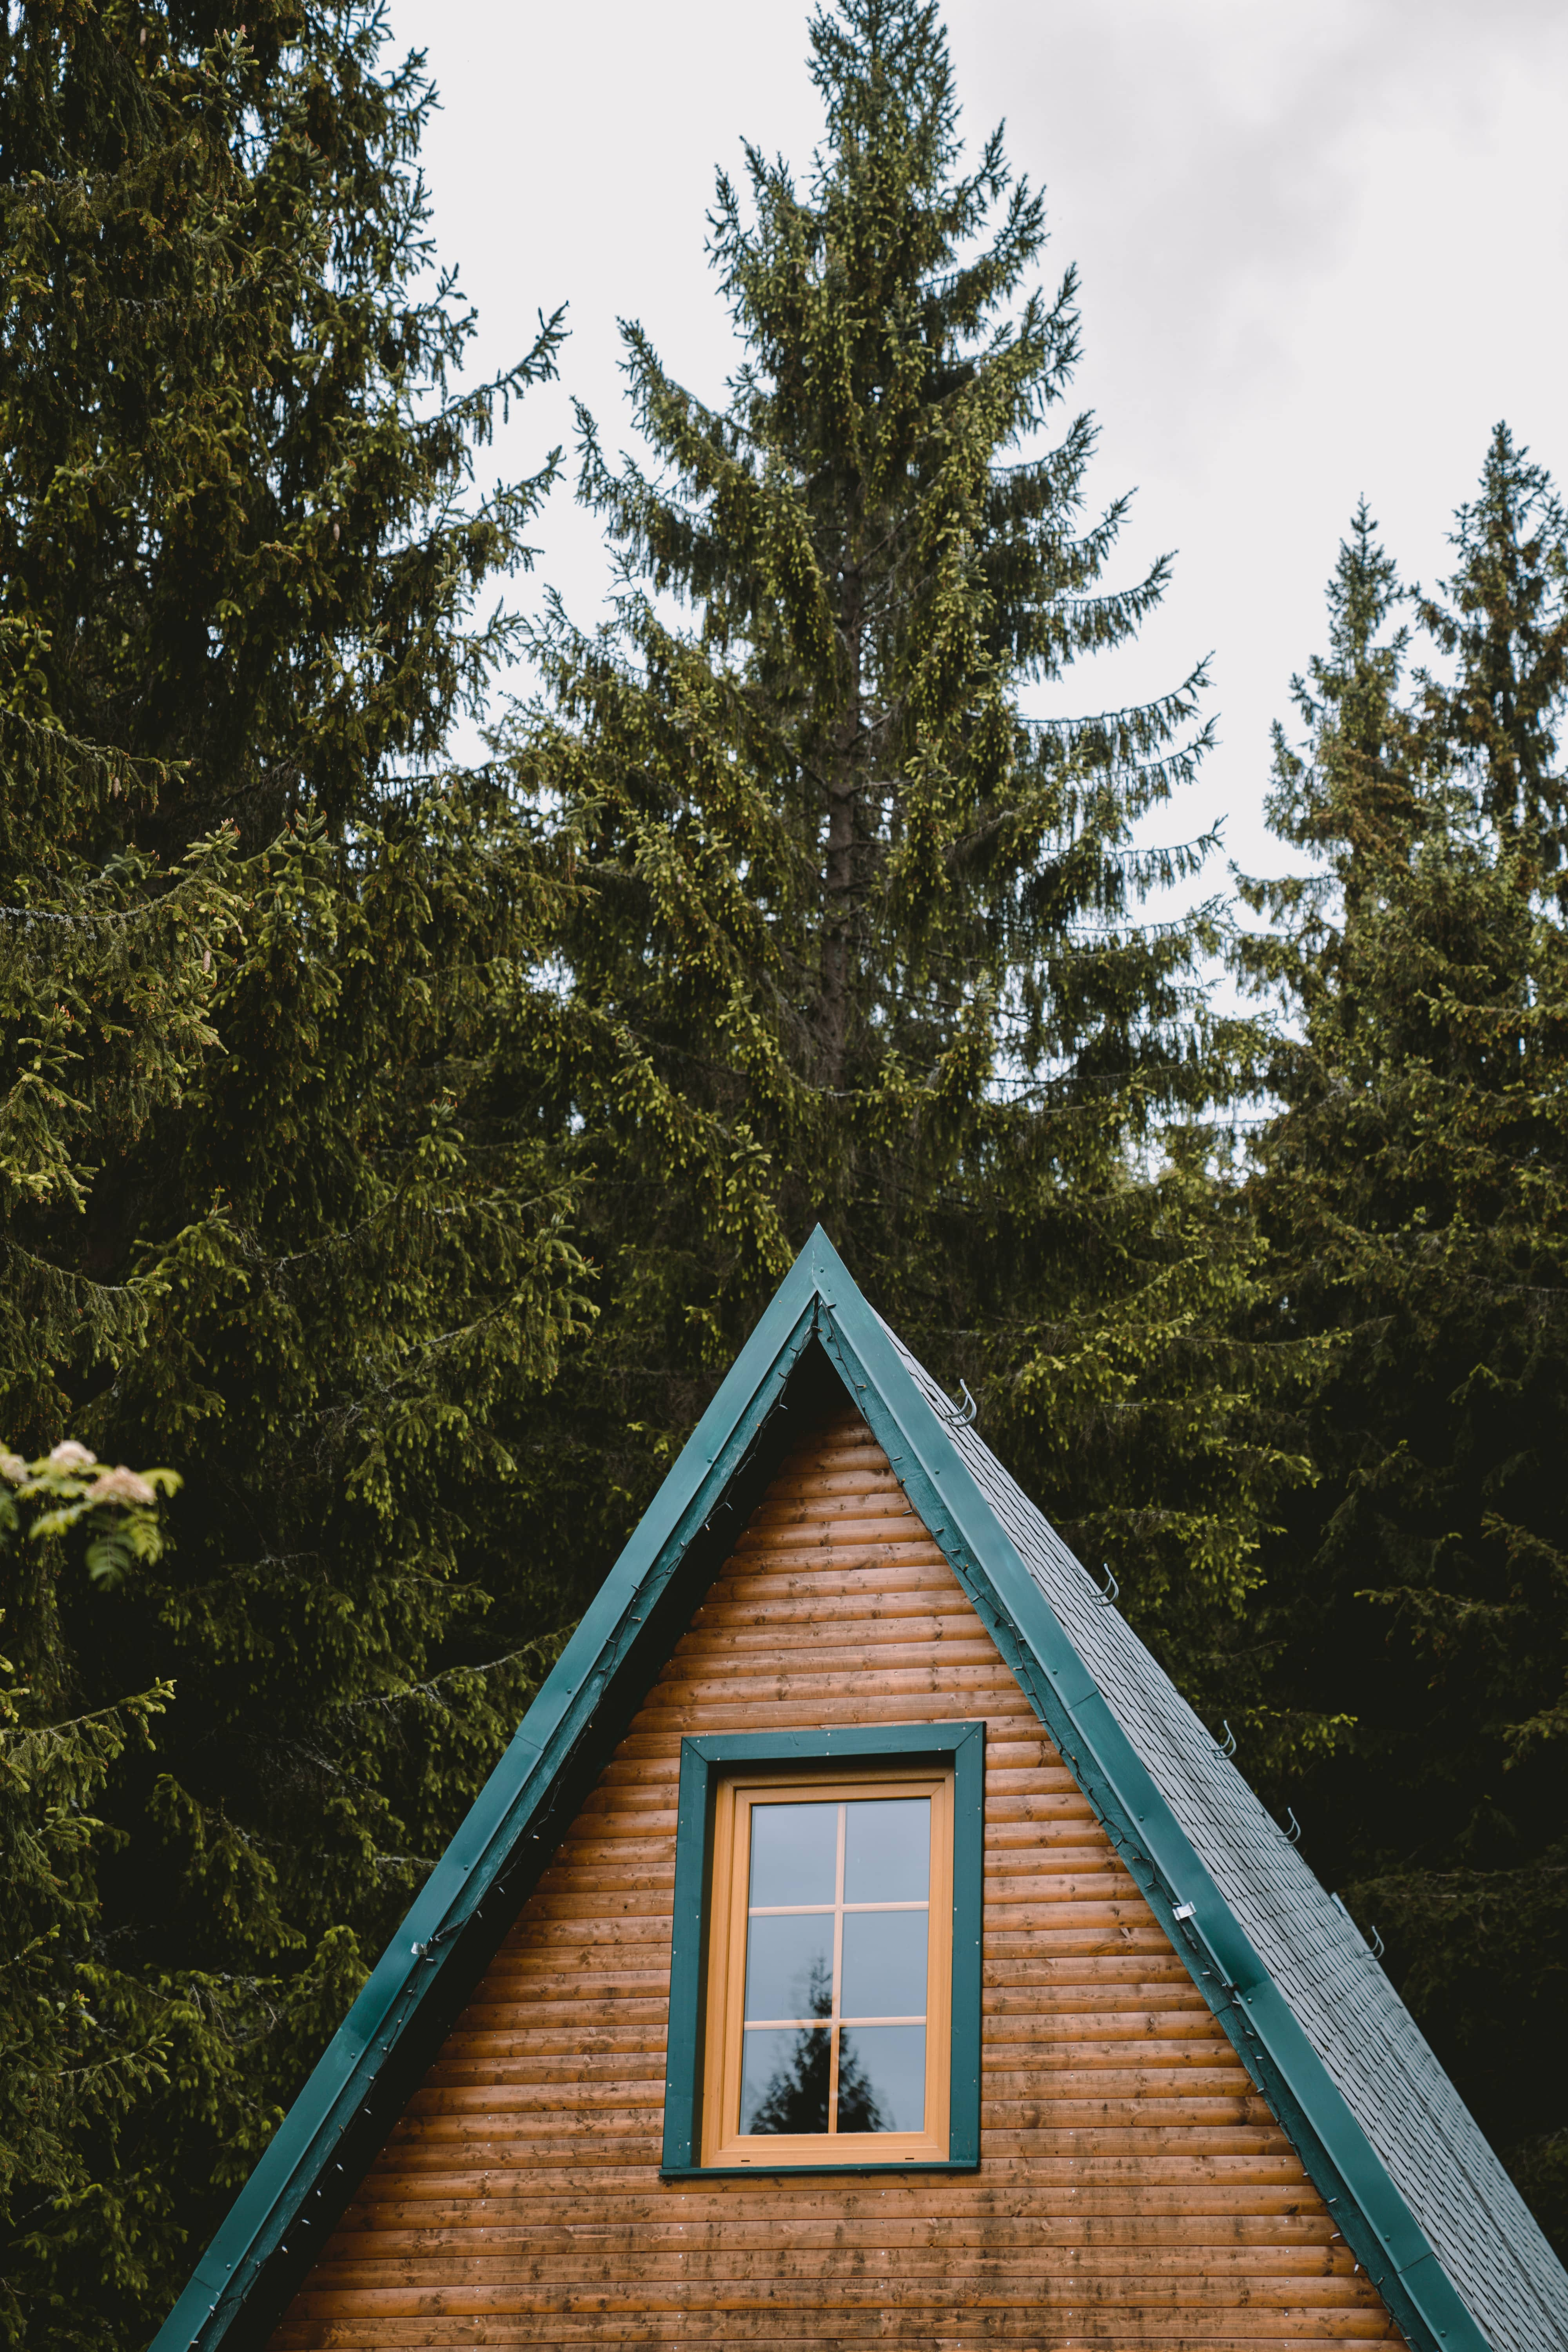 triangle shaped hut in Thüringen Germany surrounded by trees